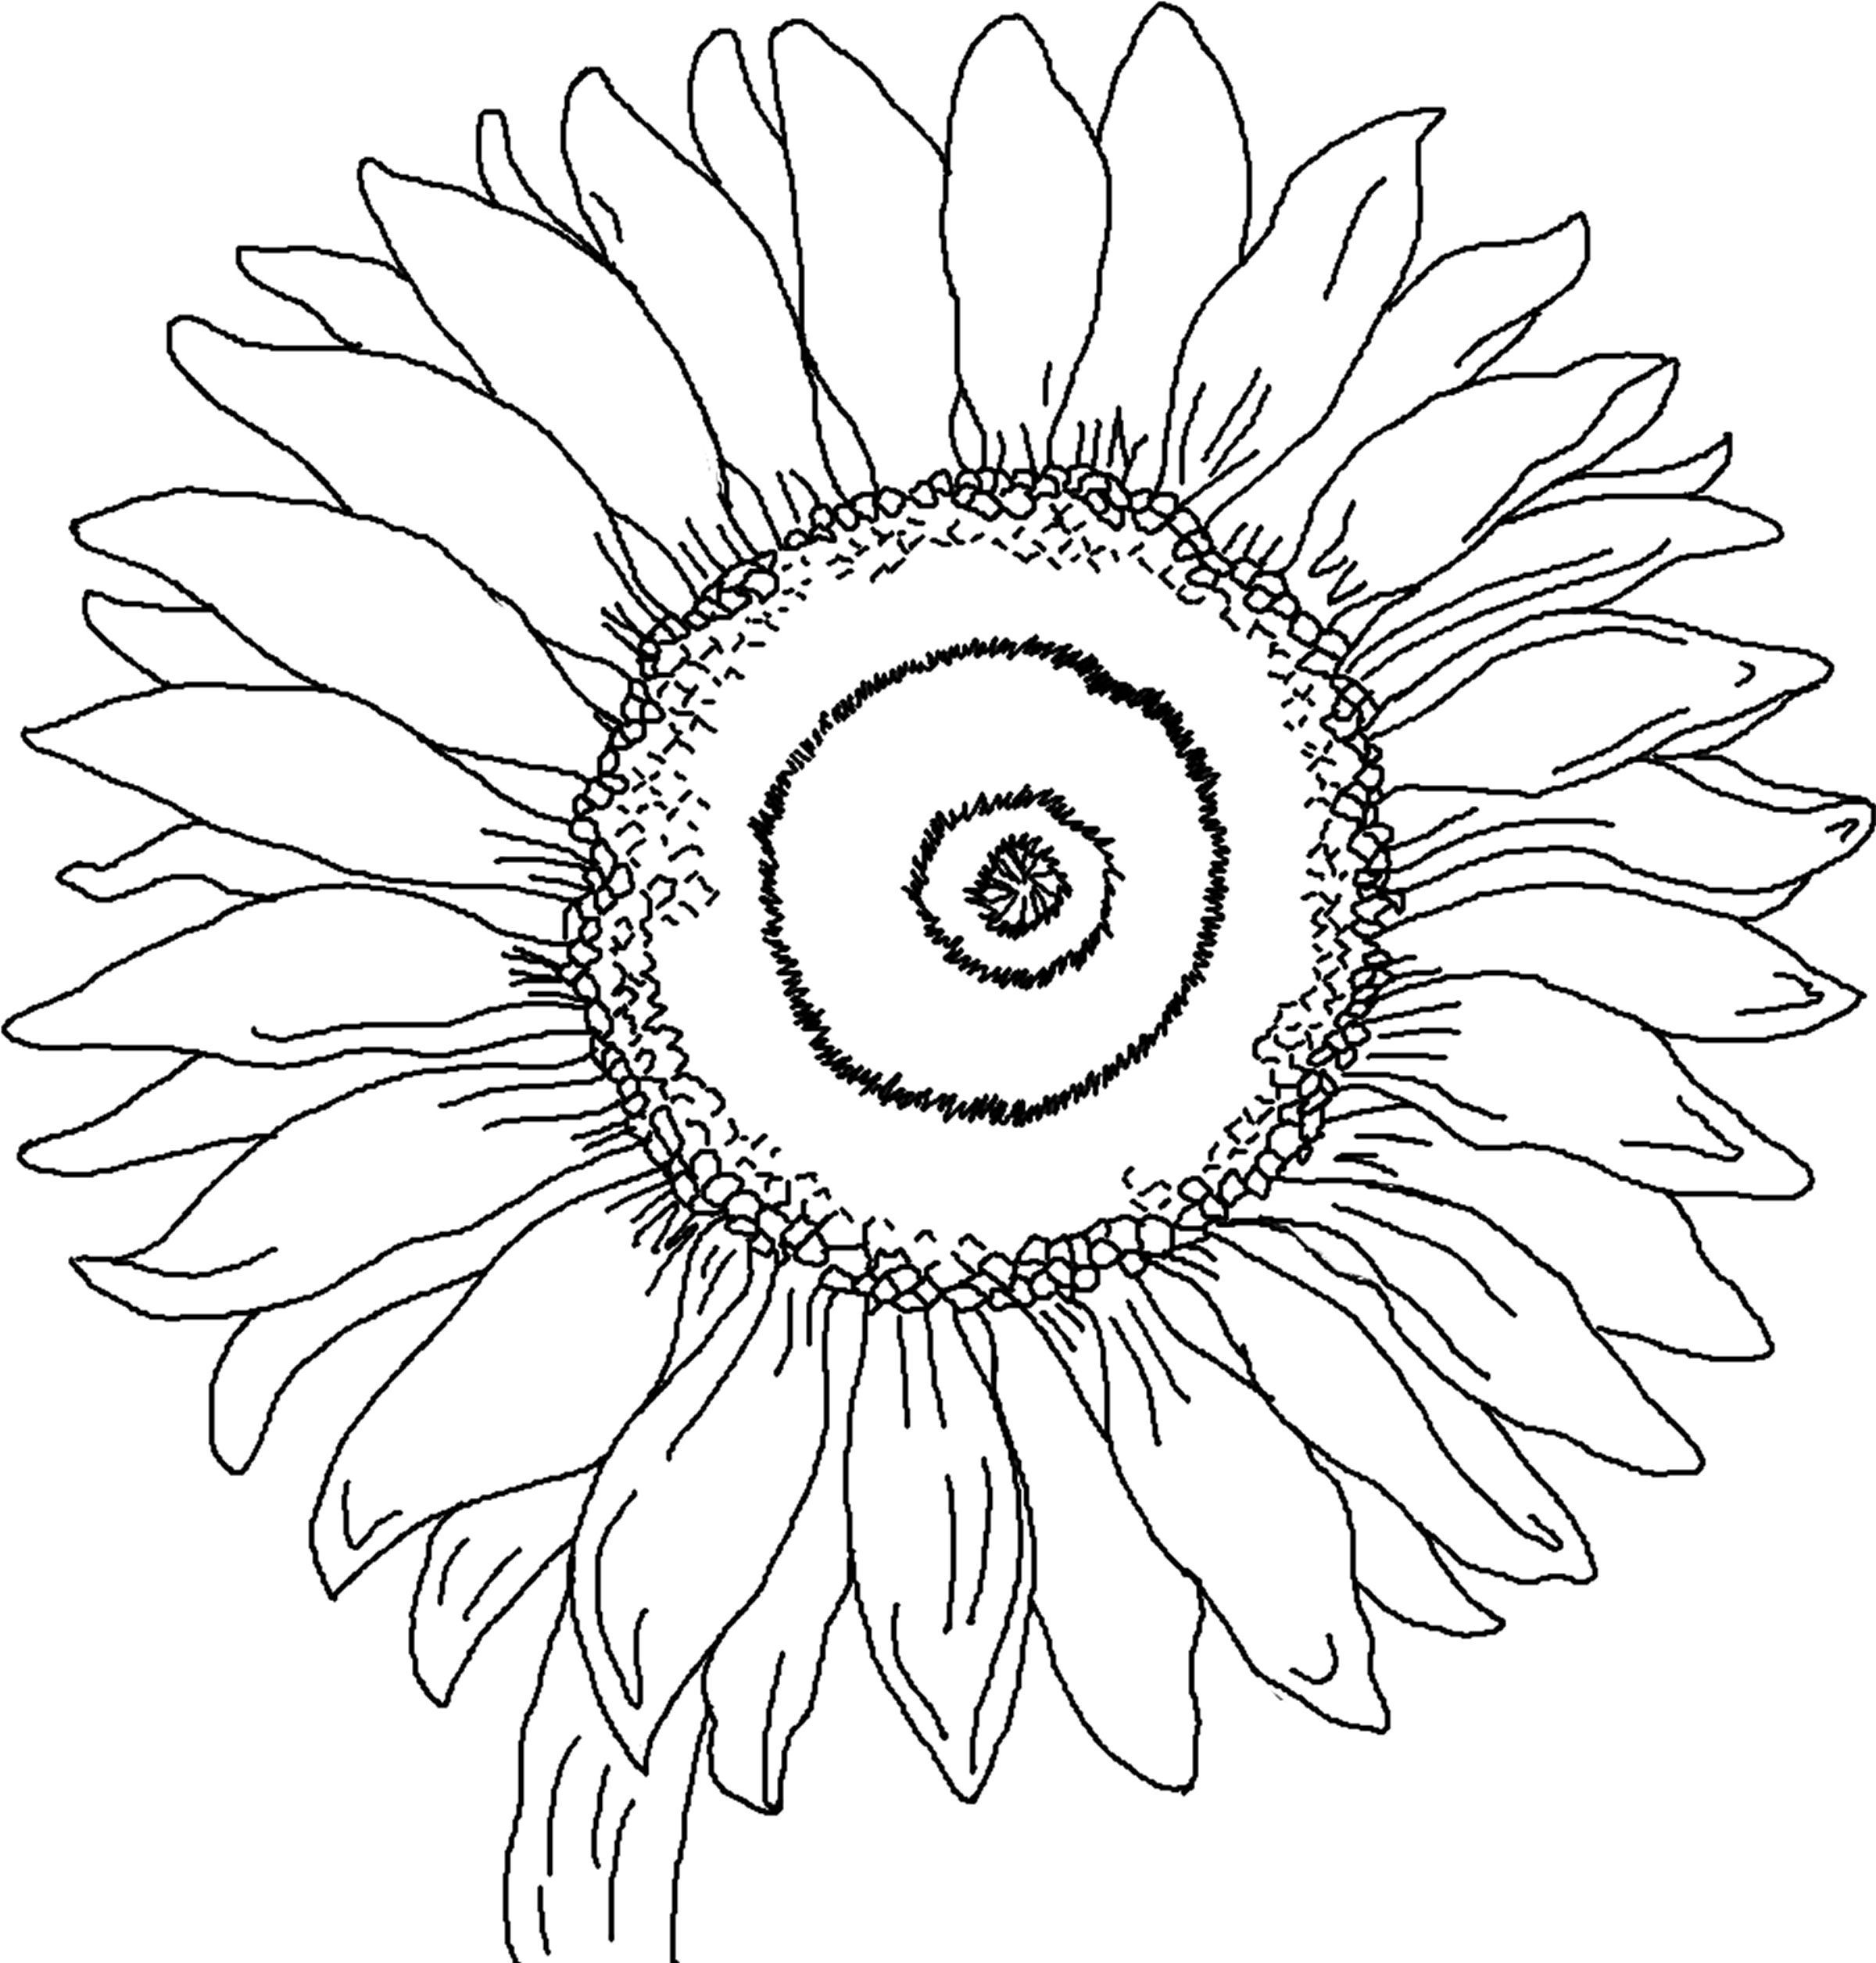 Free Printable Sunflower Coloring Pages For Kids auction